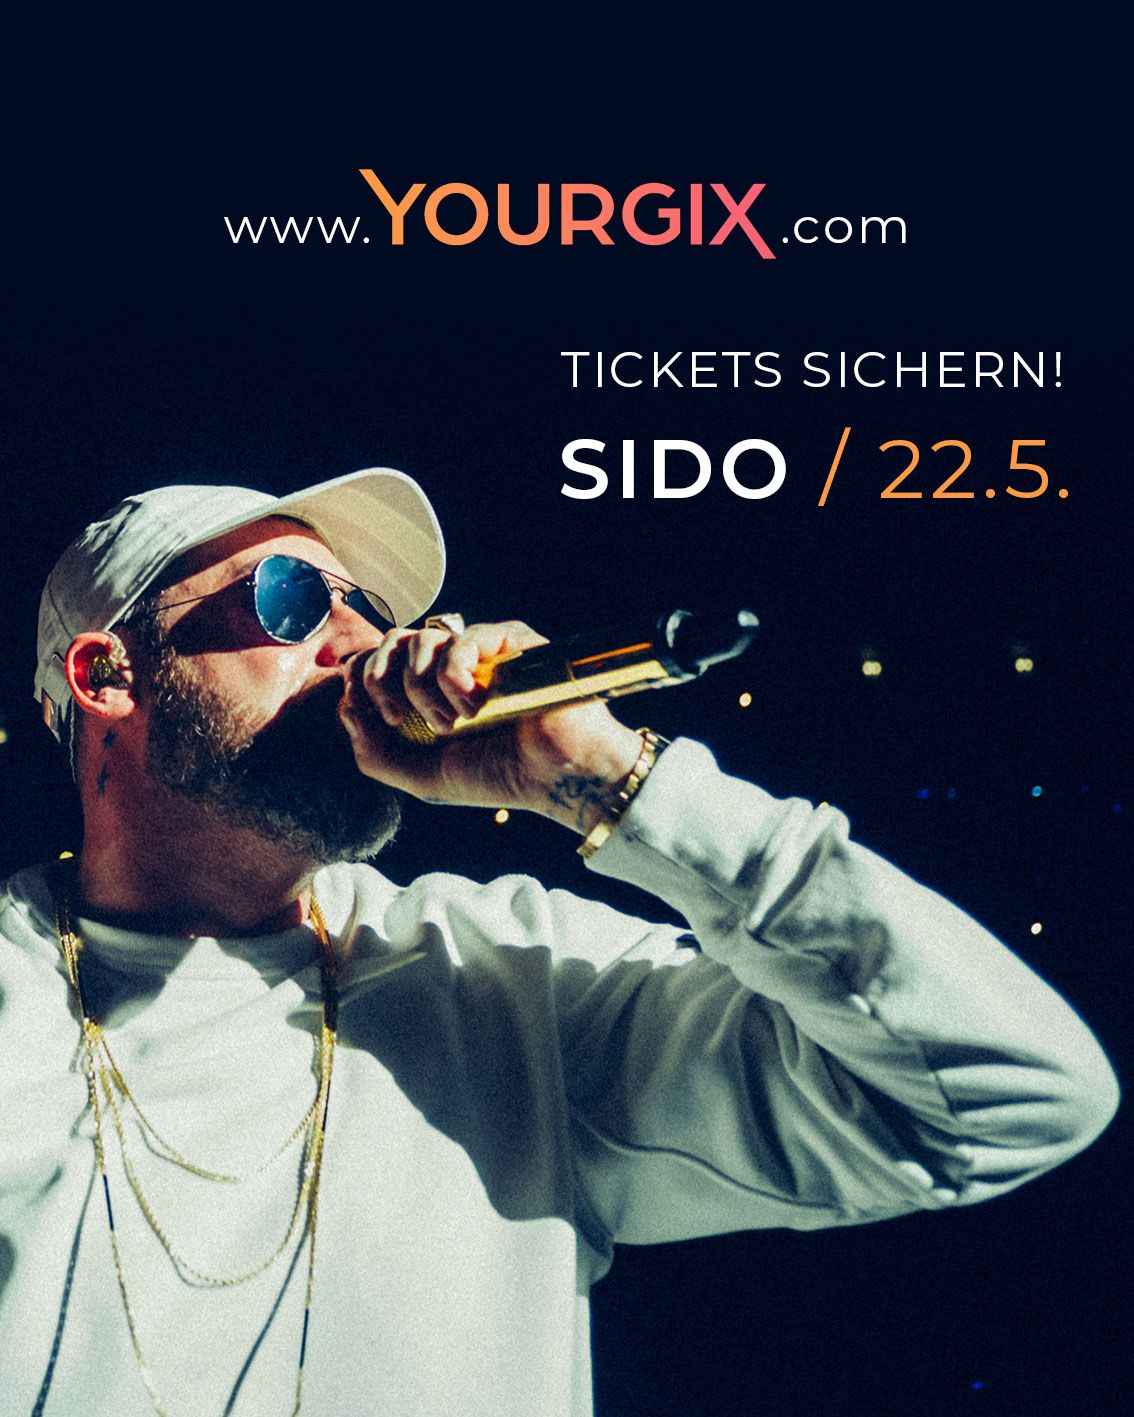 SIDO LIVE STREAMING KONZERT am 22.5.2021 | YOURGIX Ticket Verlosung